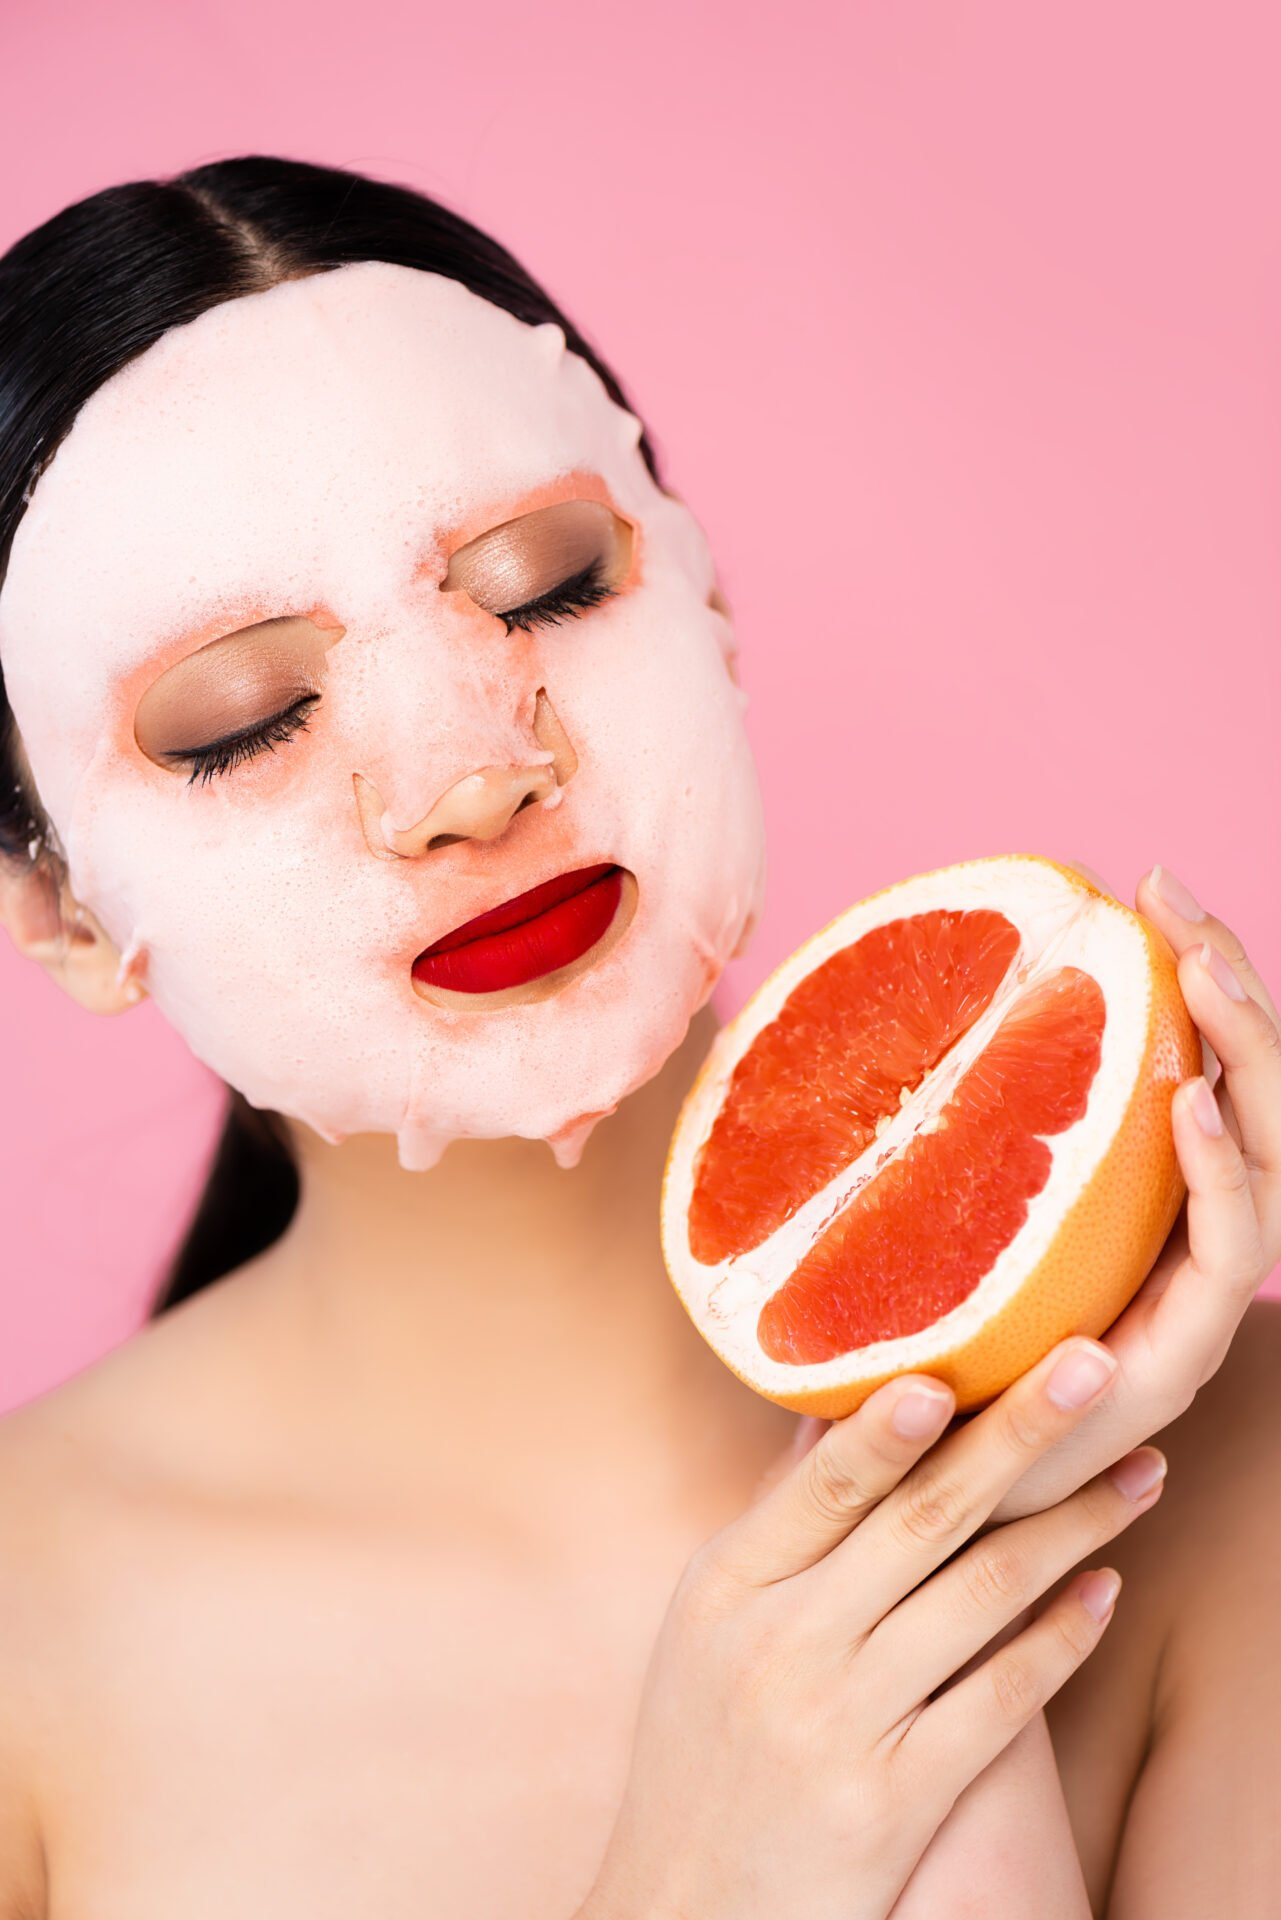 Korean woman with a non-toxic k-beauty face mask holding a grapefruit